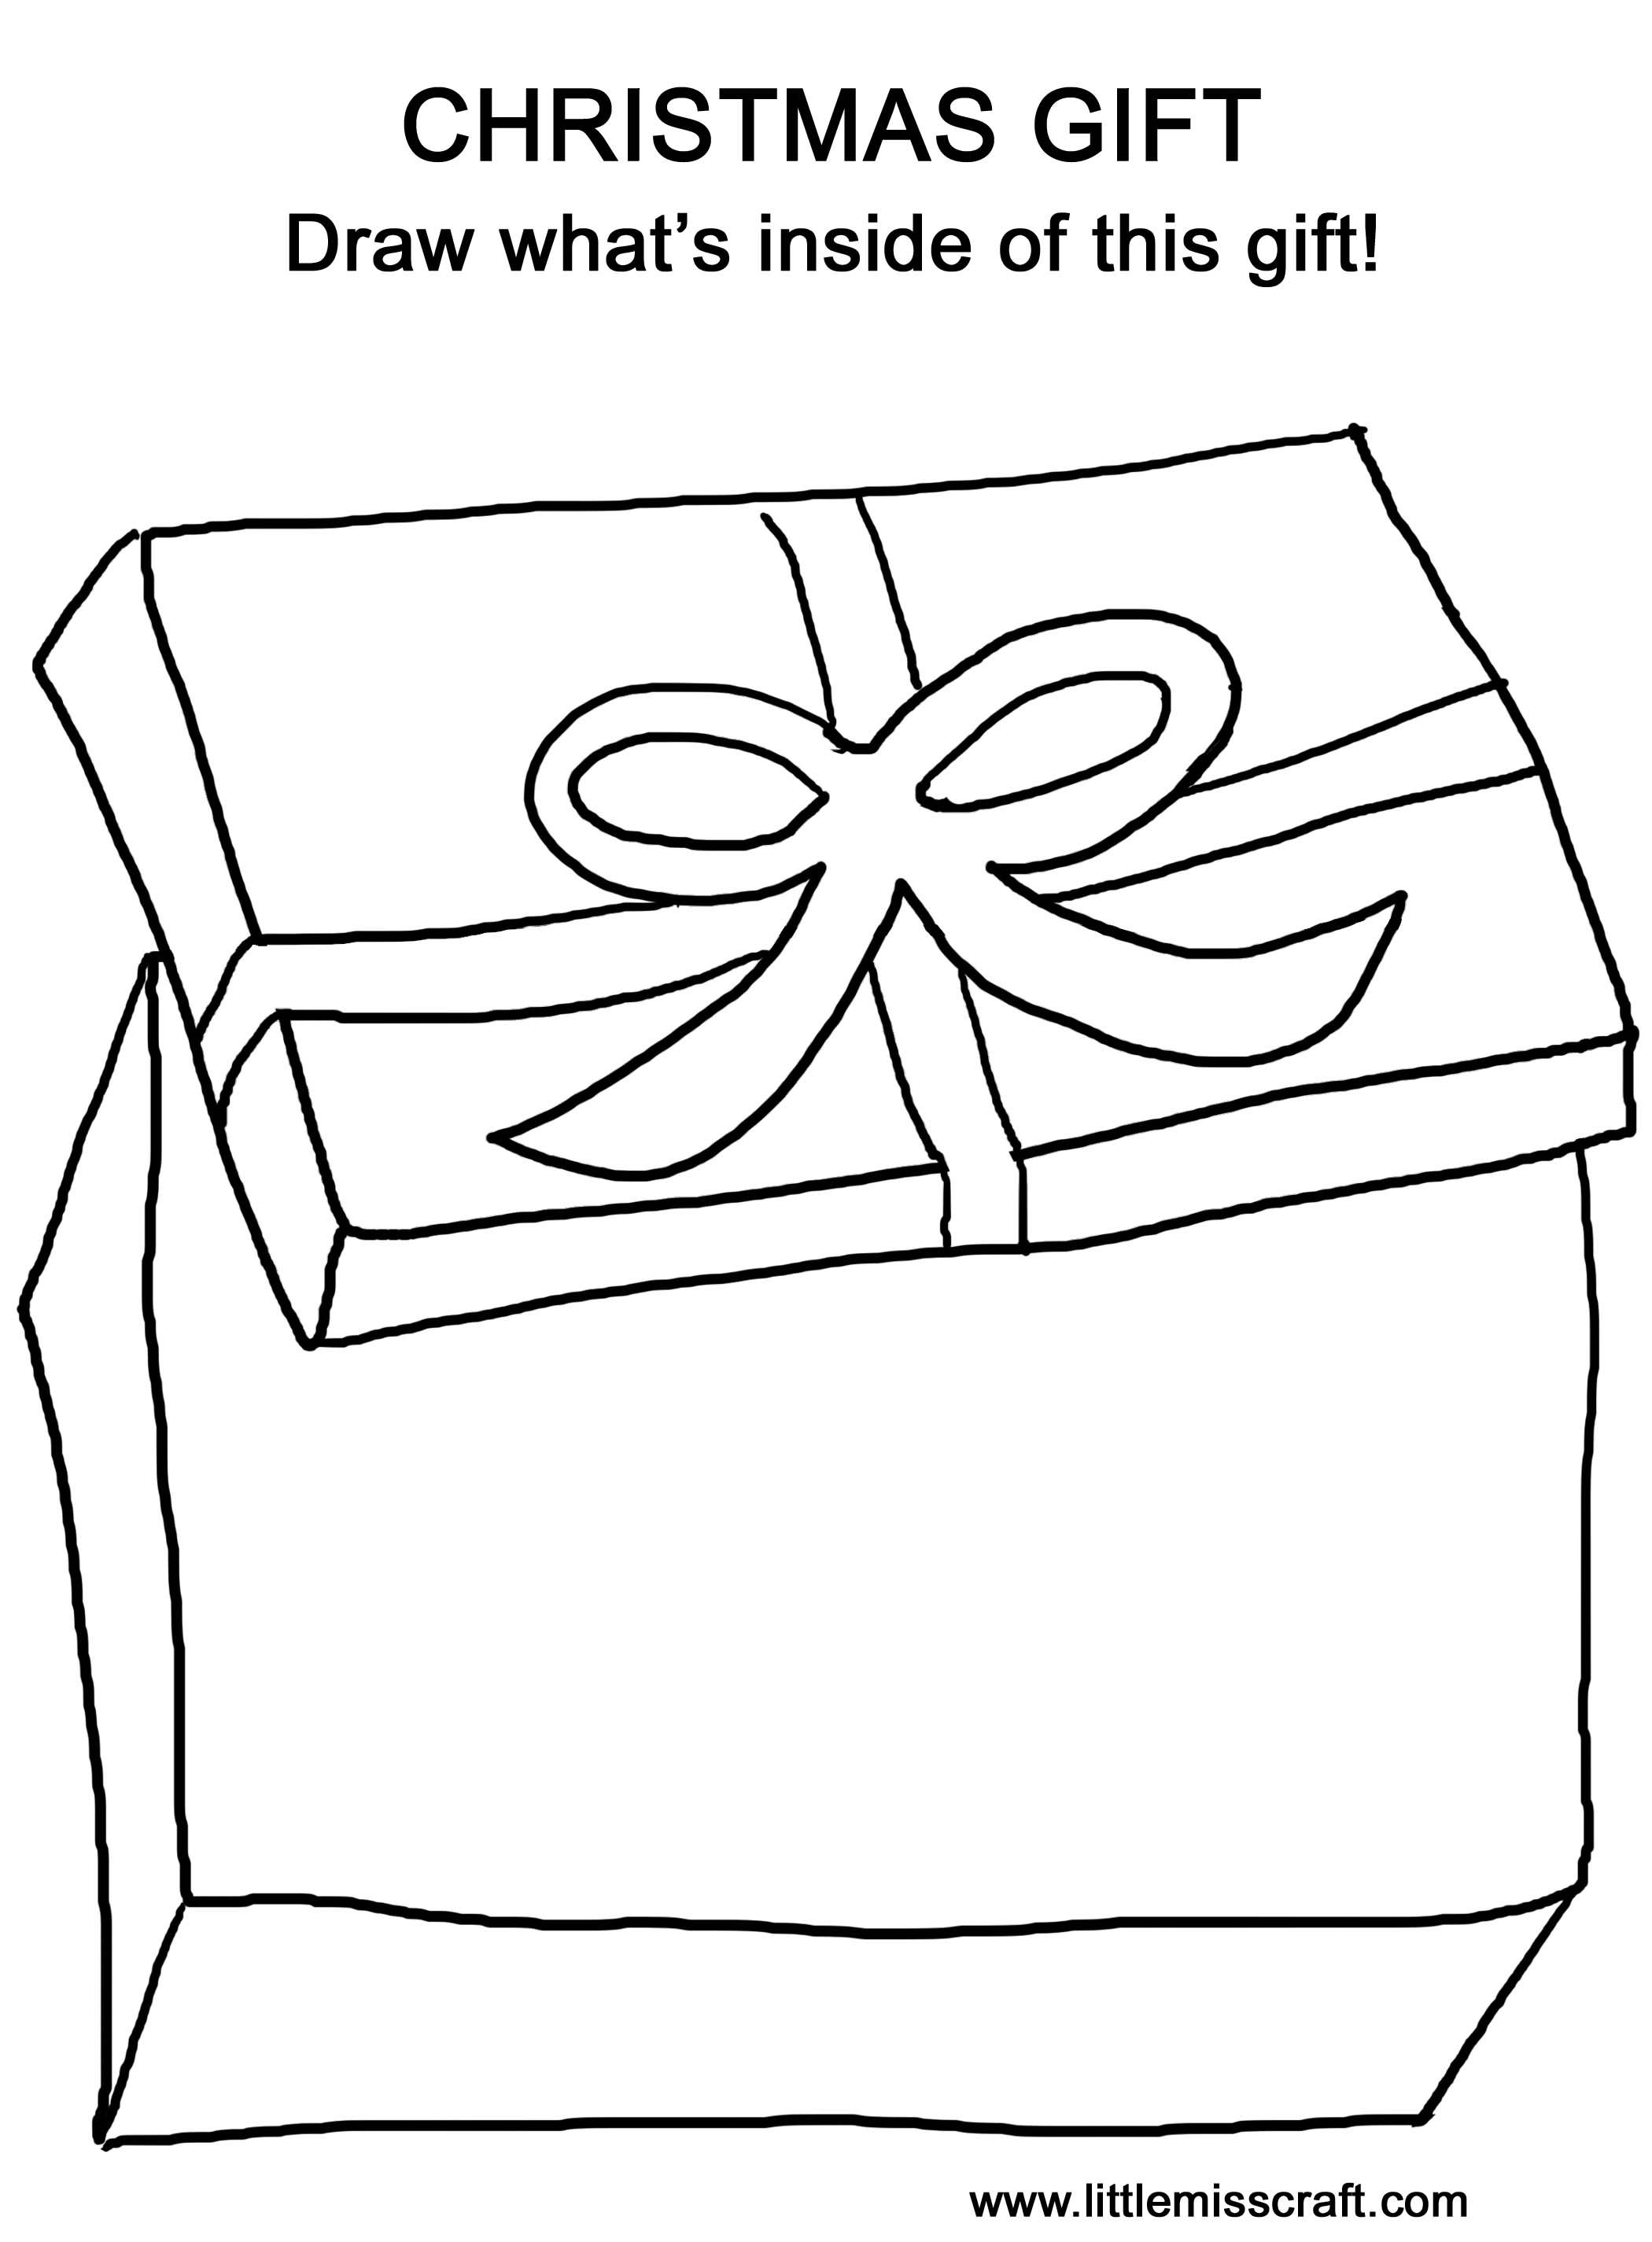 Coloring Pages Christmas Gift Coloring Page 1000 images about coloring page on pinterest easy things to draw and christmas gifts